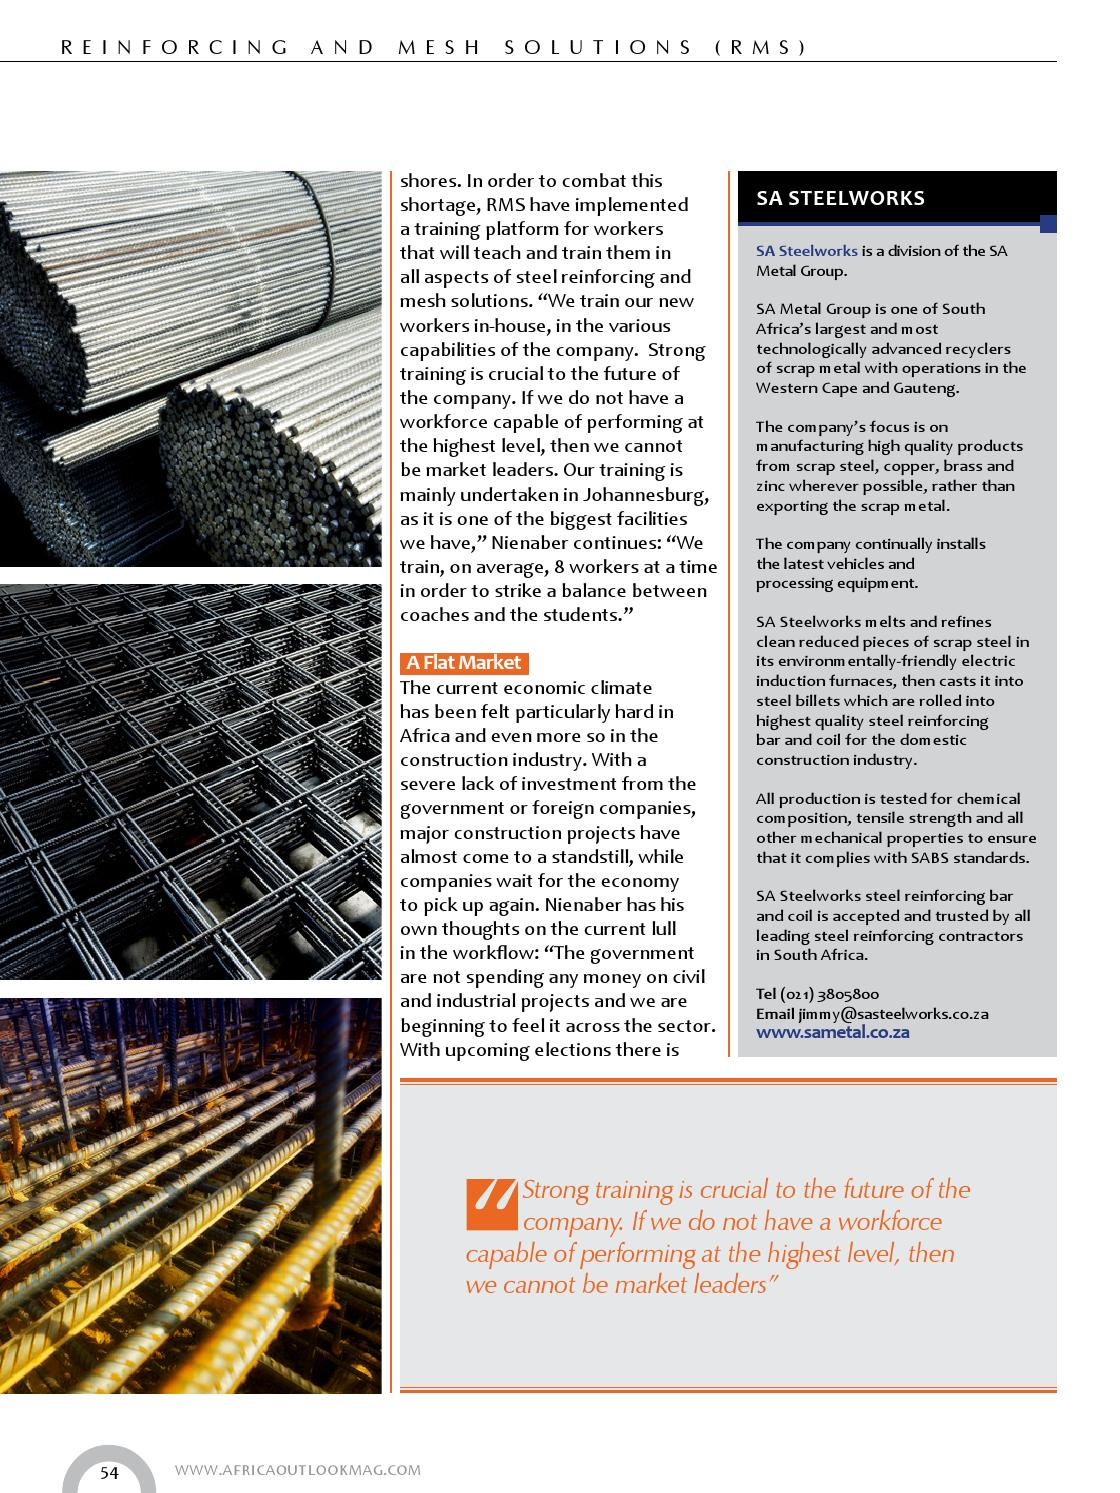 Africa Outlook Issue 14 by Outlook Publishing - issuu